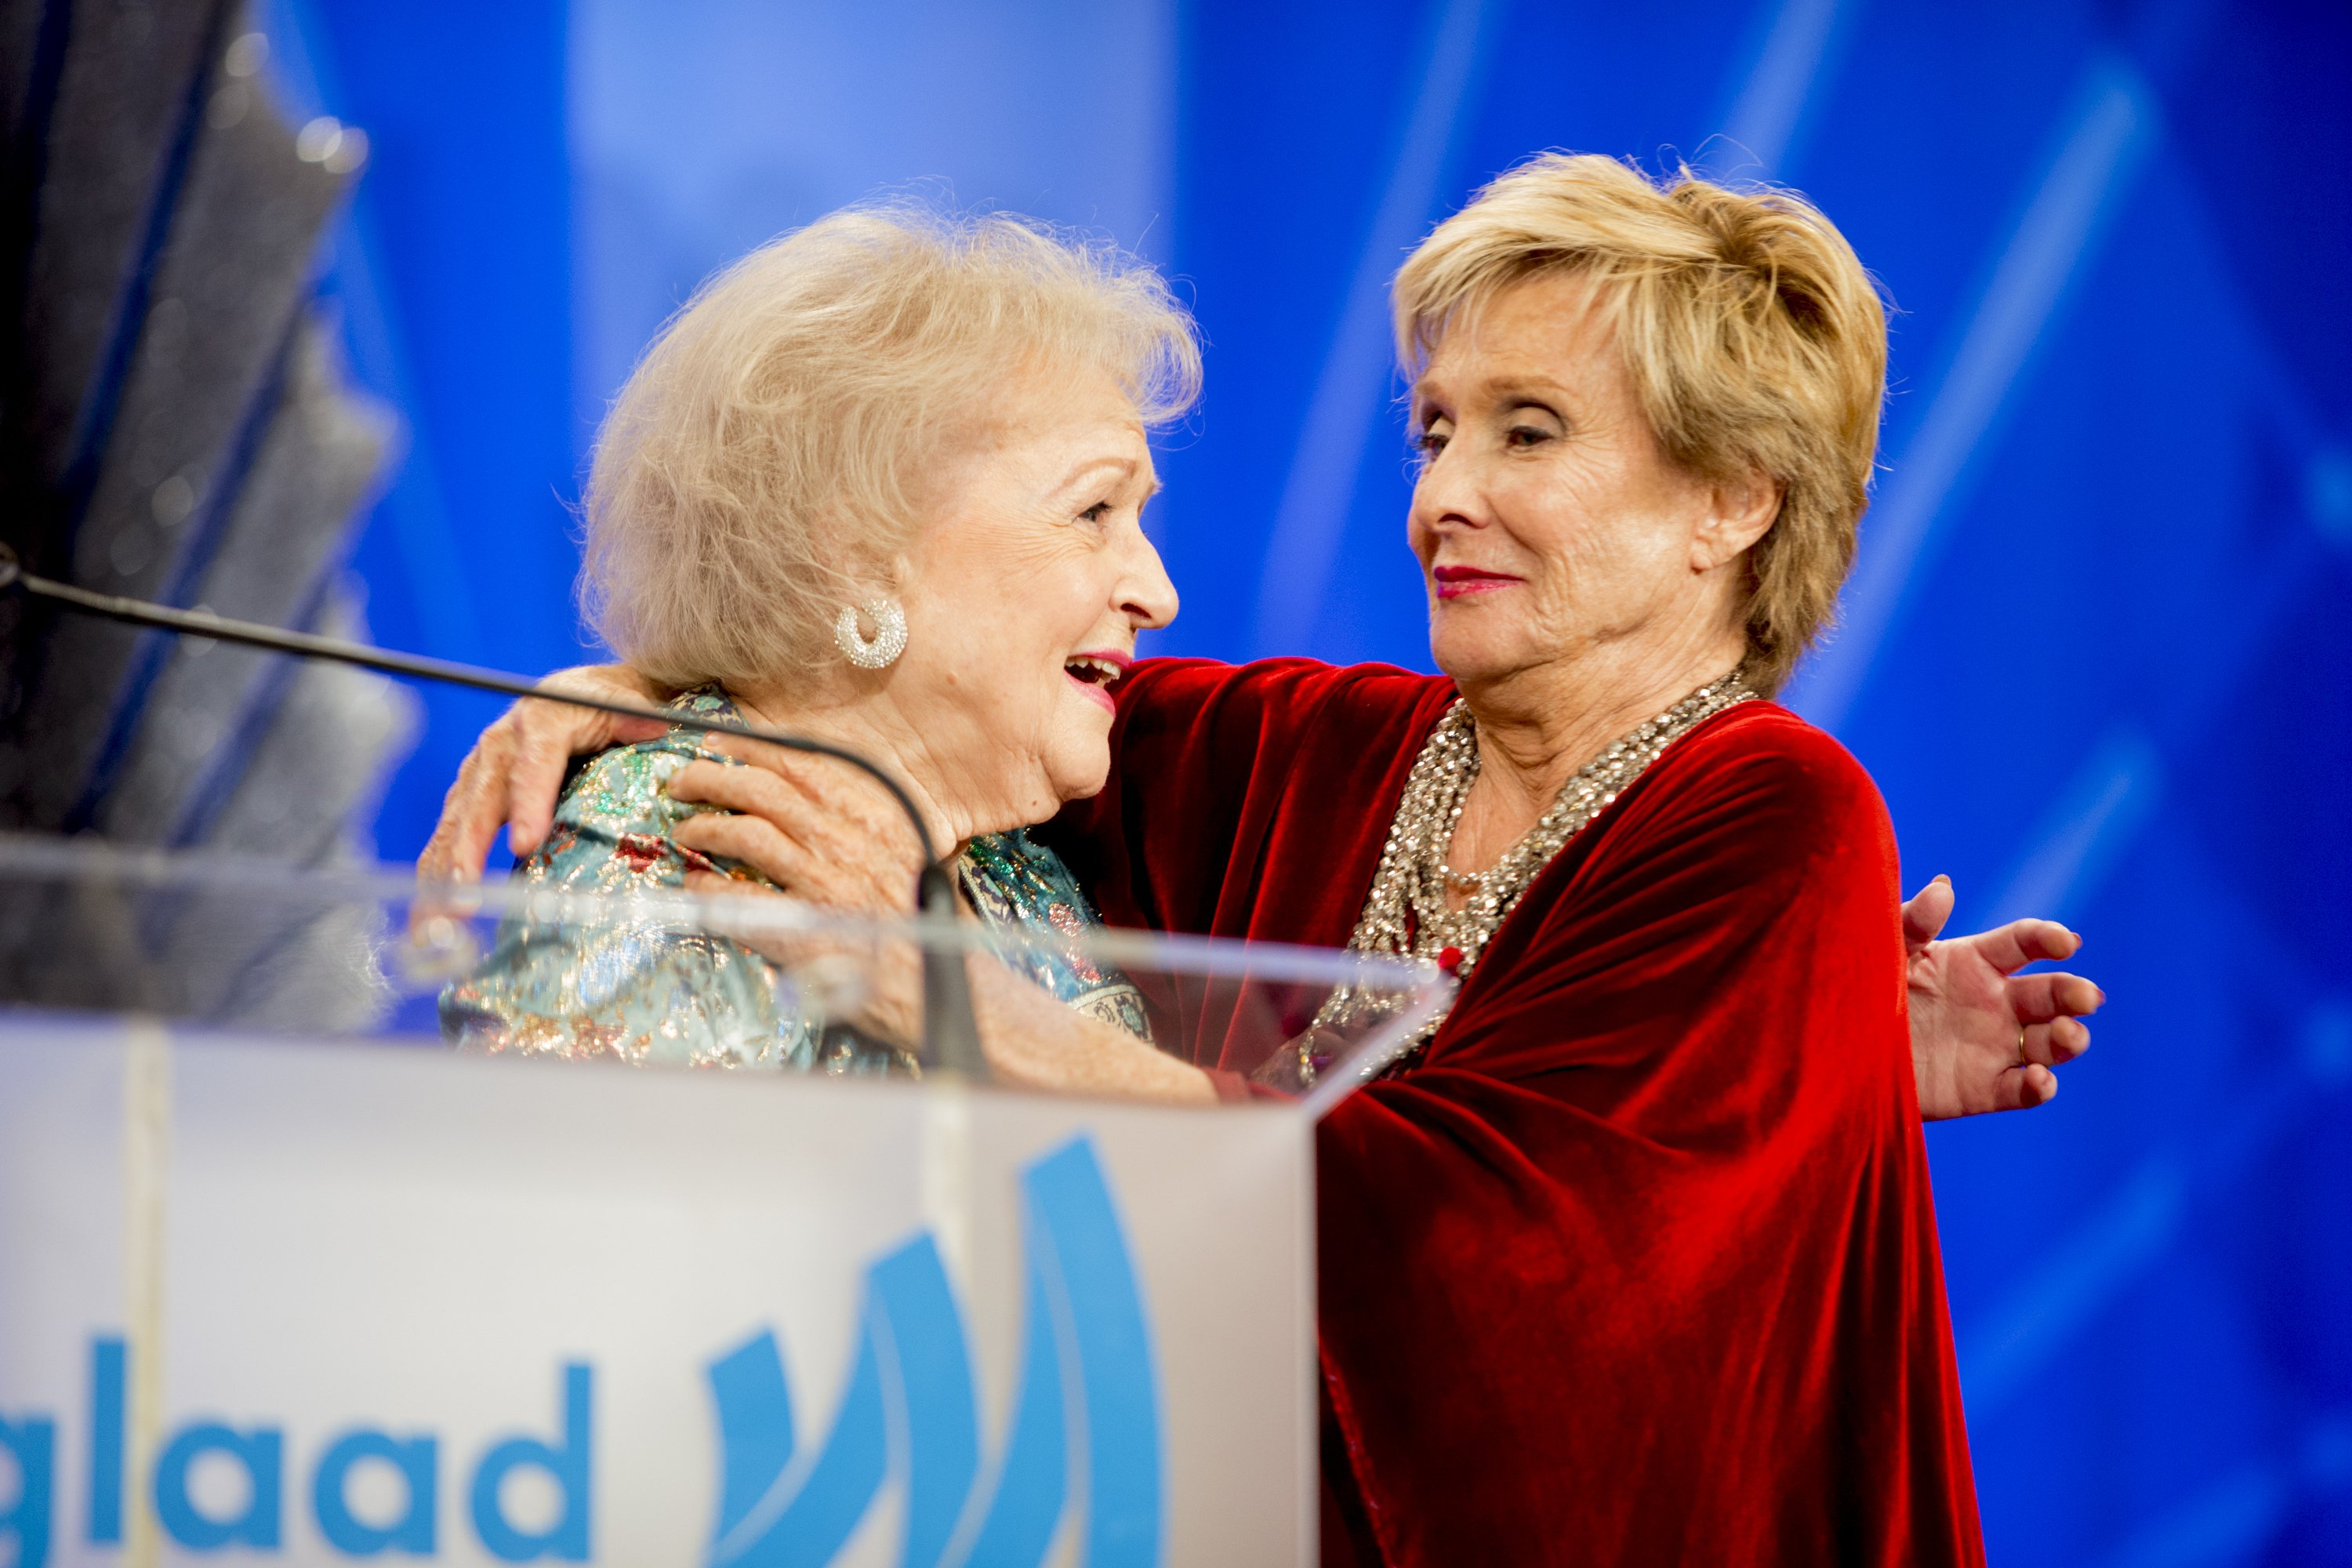 Betty White and Cloris Leachman attend the 24th Annual GLAAD Media Awards at JW Marriott Los Angeles at L.A. LIVE on April 20, 2013 in Los Angeles, California | Photo: Getty Images